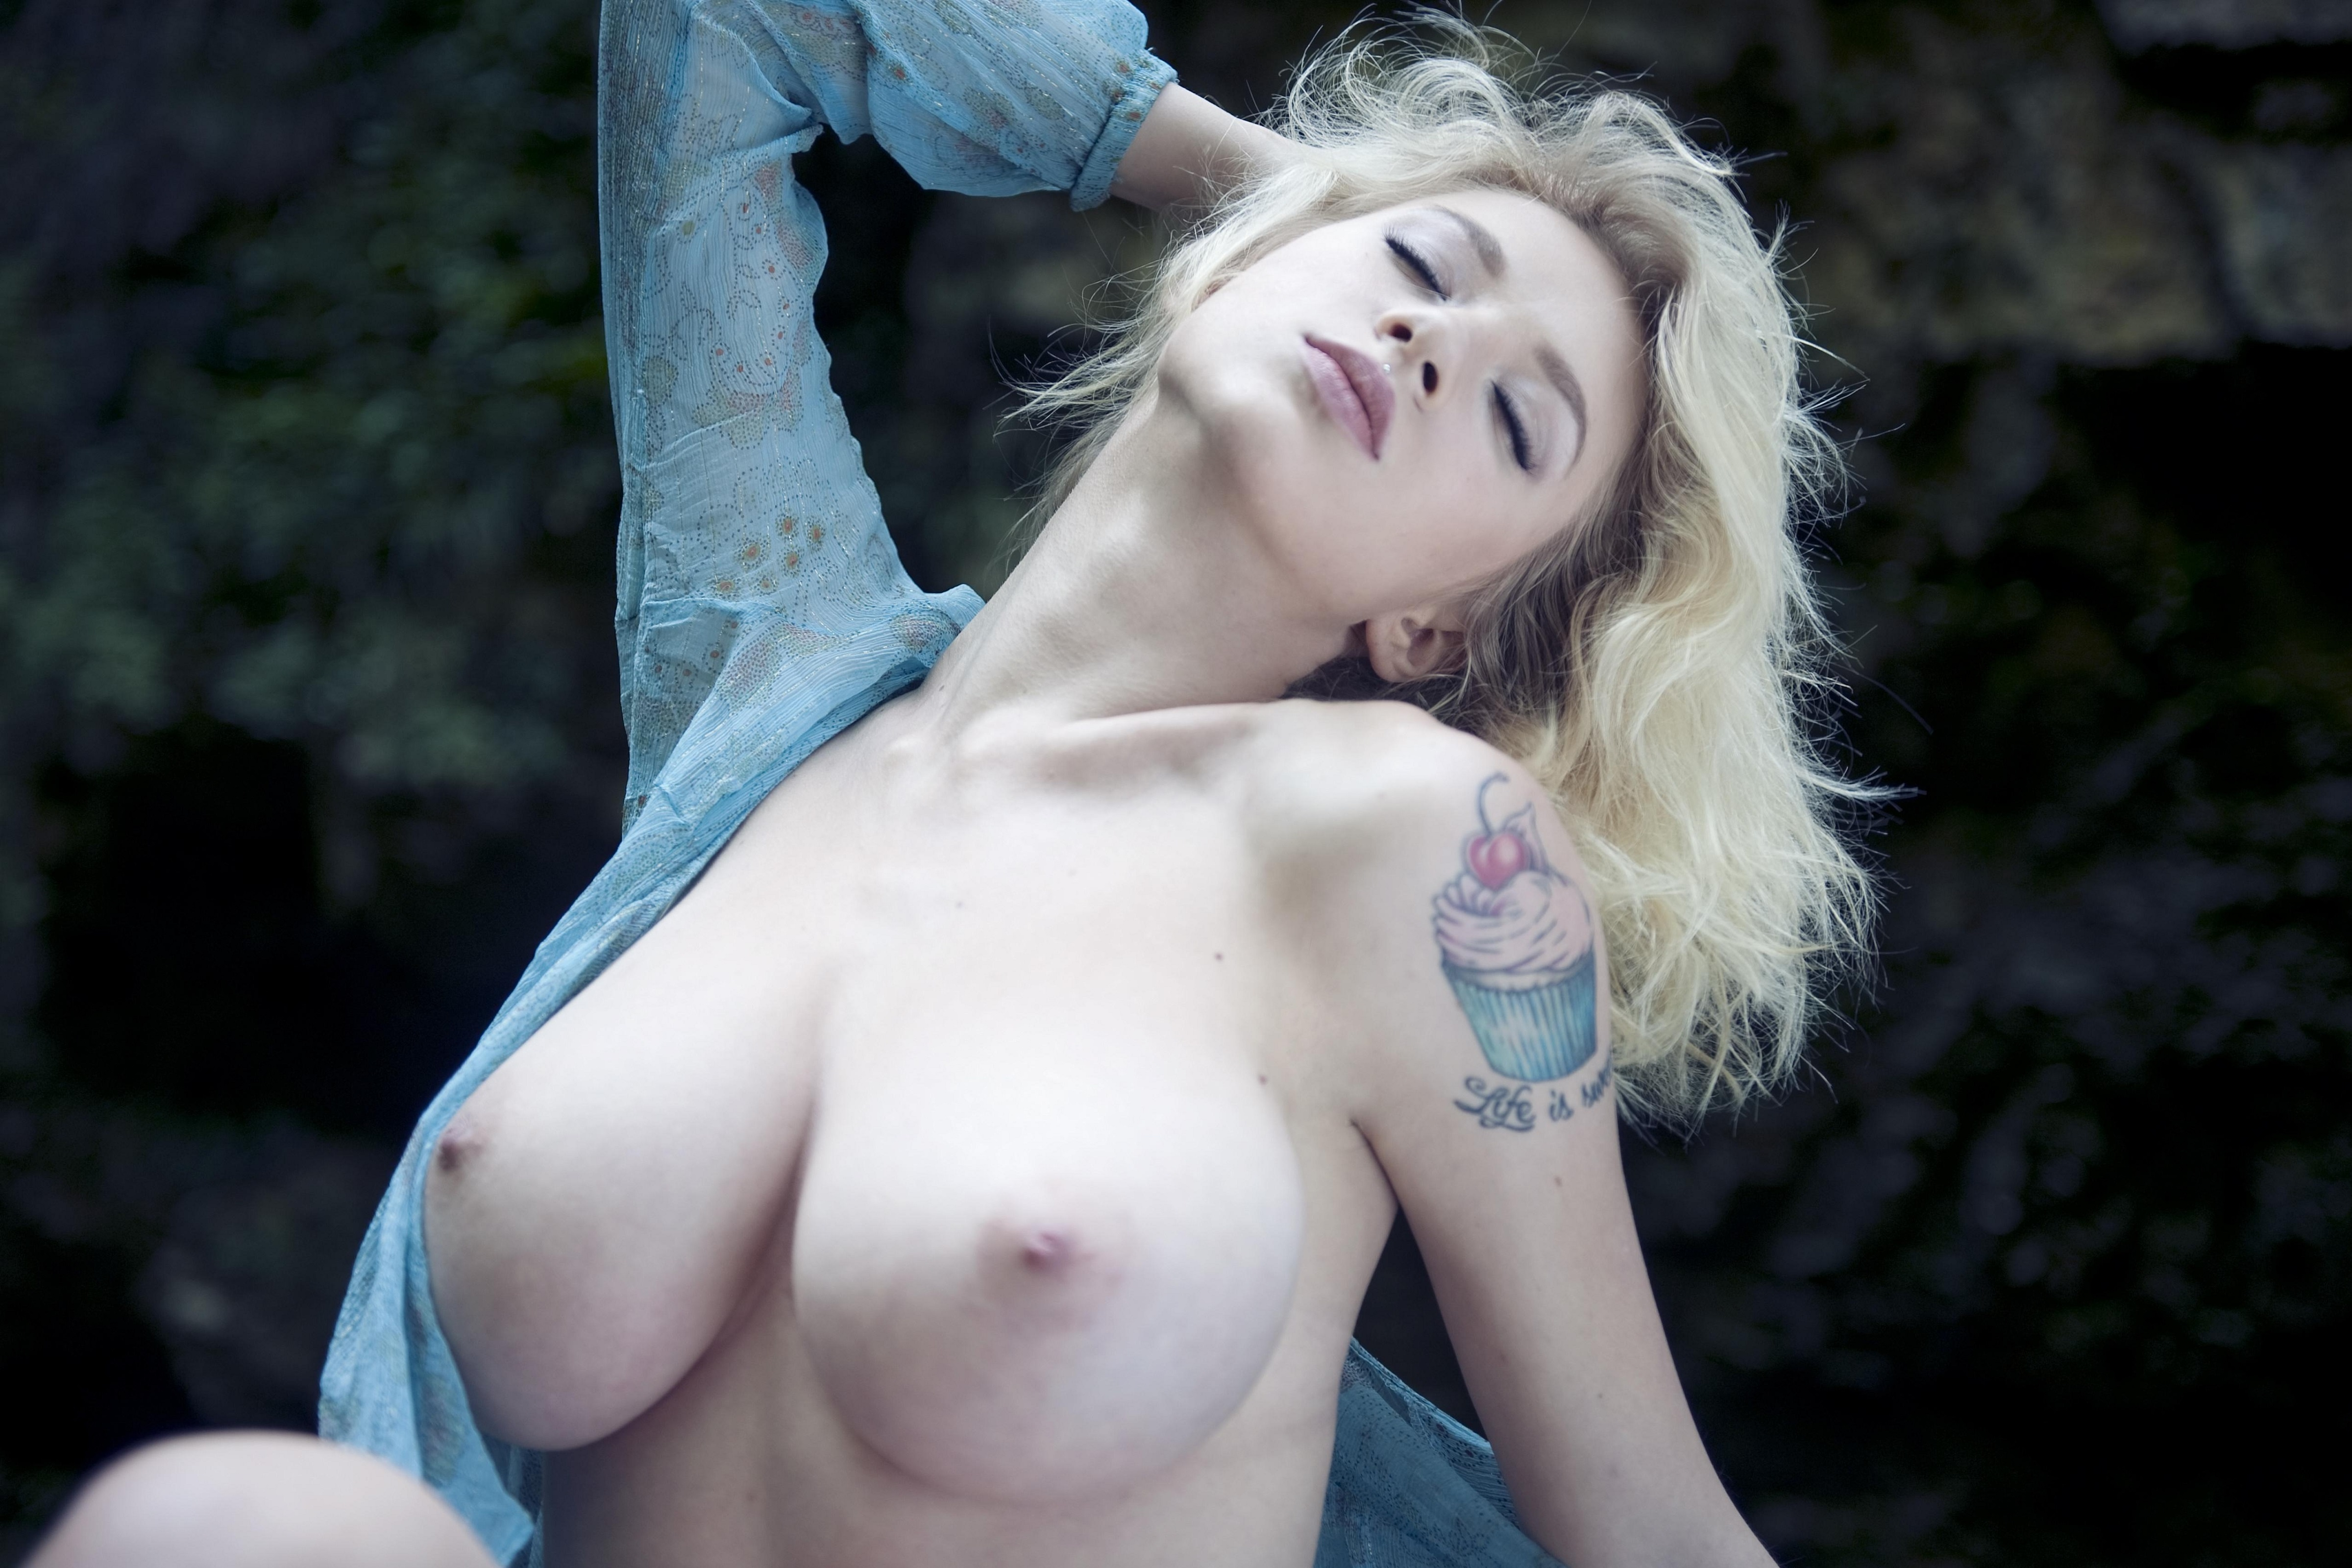 up close18 xvideos